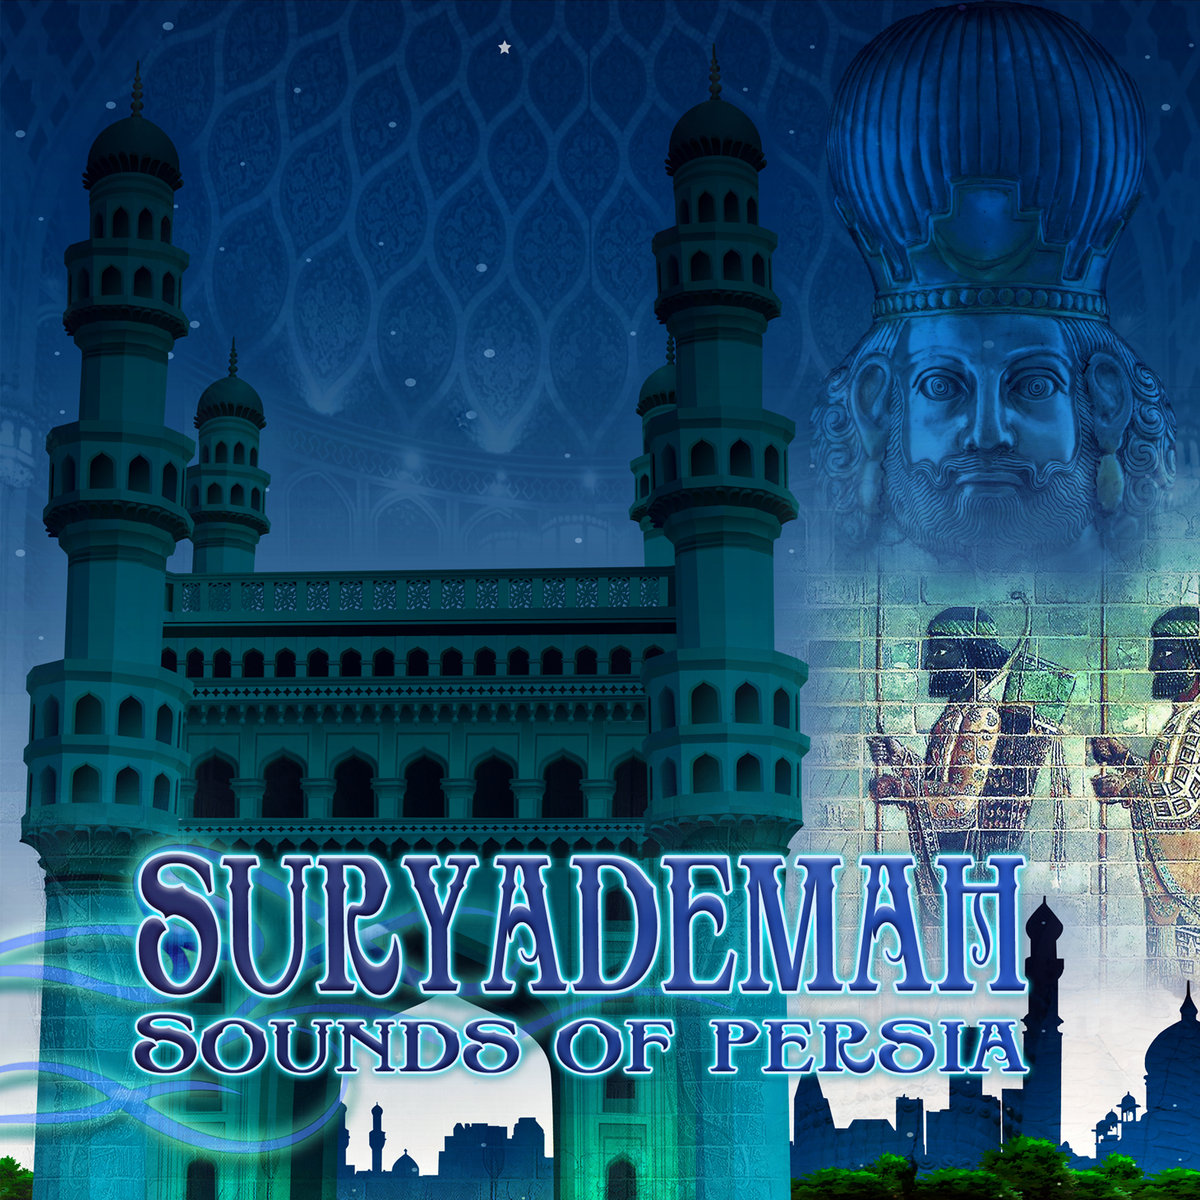 SuryaDemaH - The Whirling Dance @ 'Sounds of Persia' album (electronic, surayedemah)